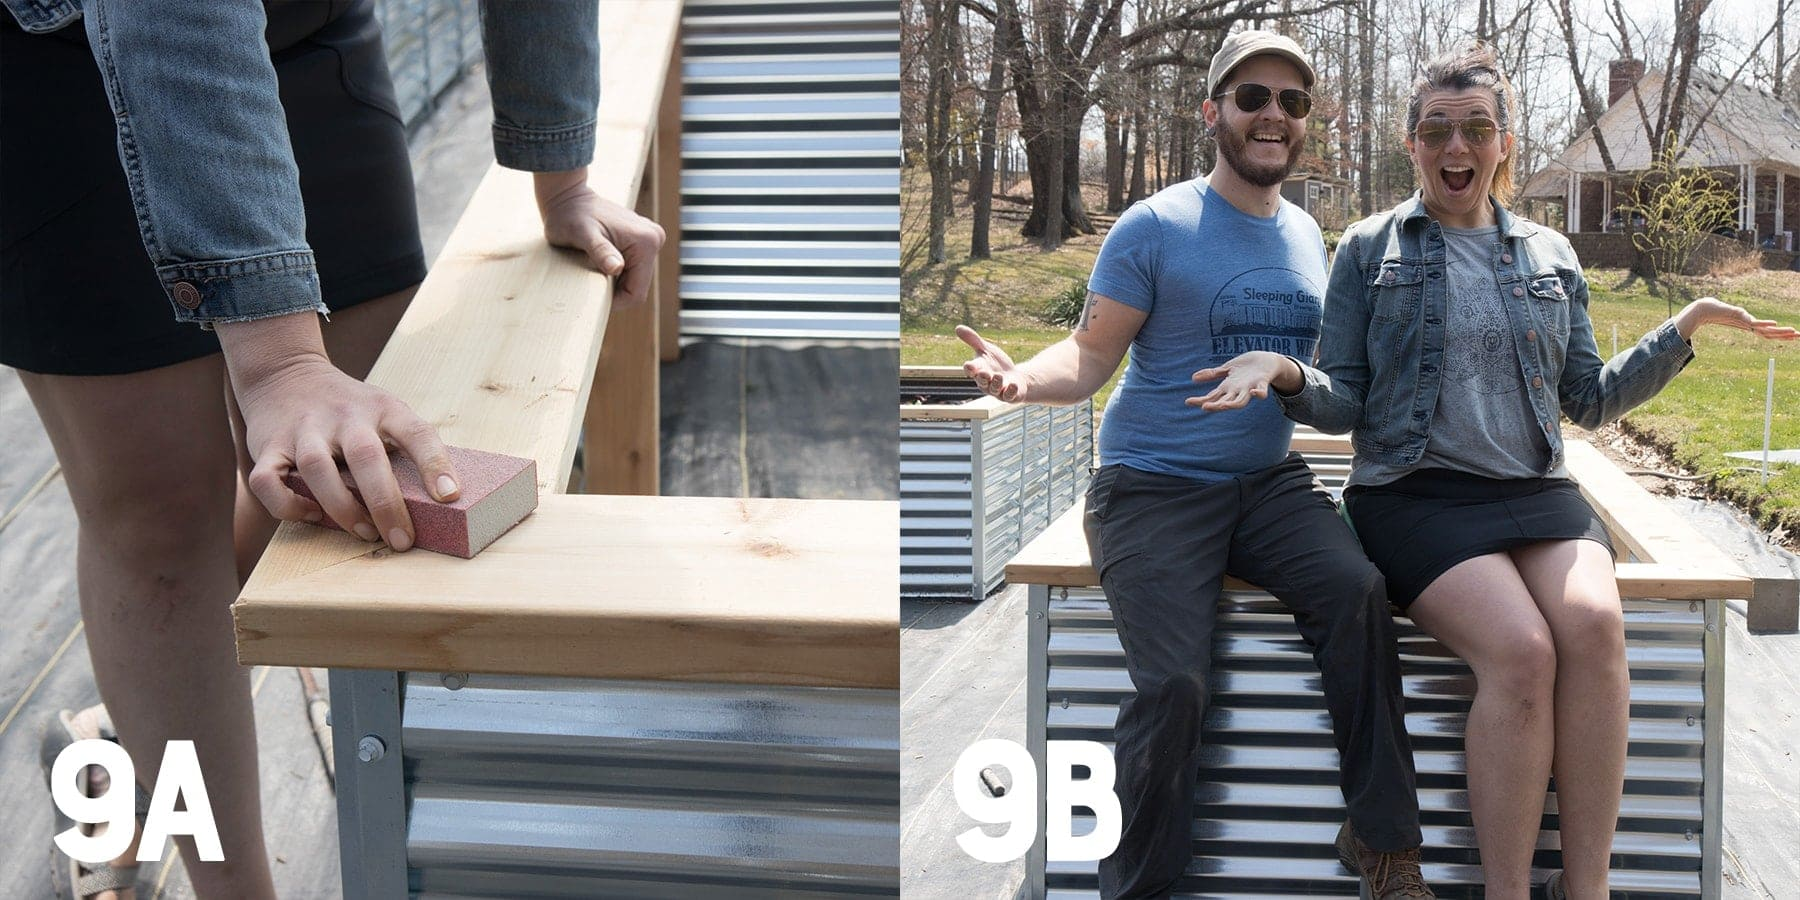 Two image collage of sanding a galvanized steel raised bed and two people sitting on the edge of a finished raised bed